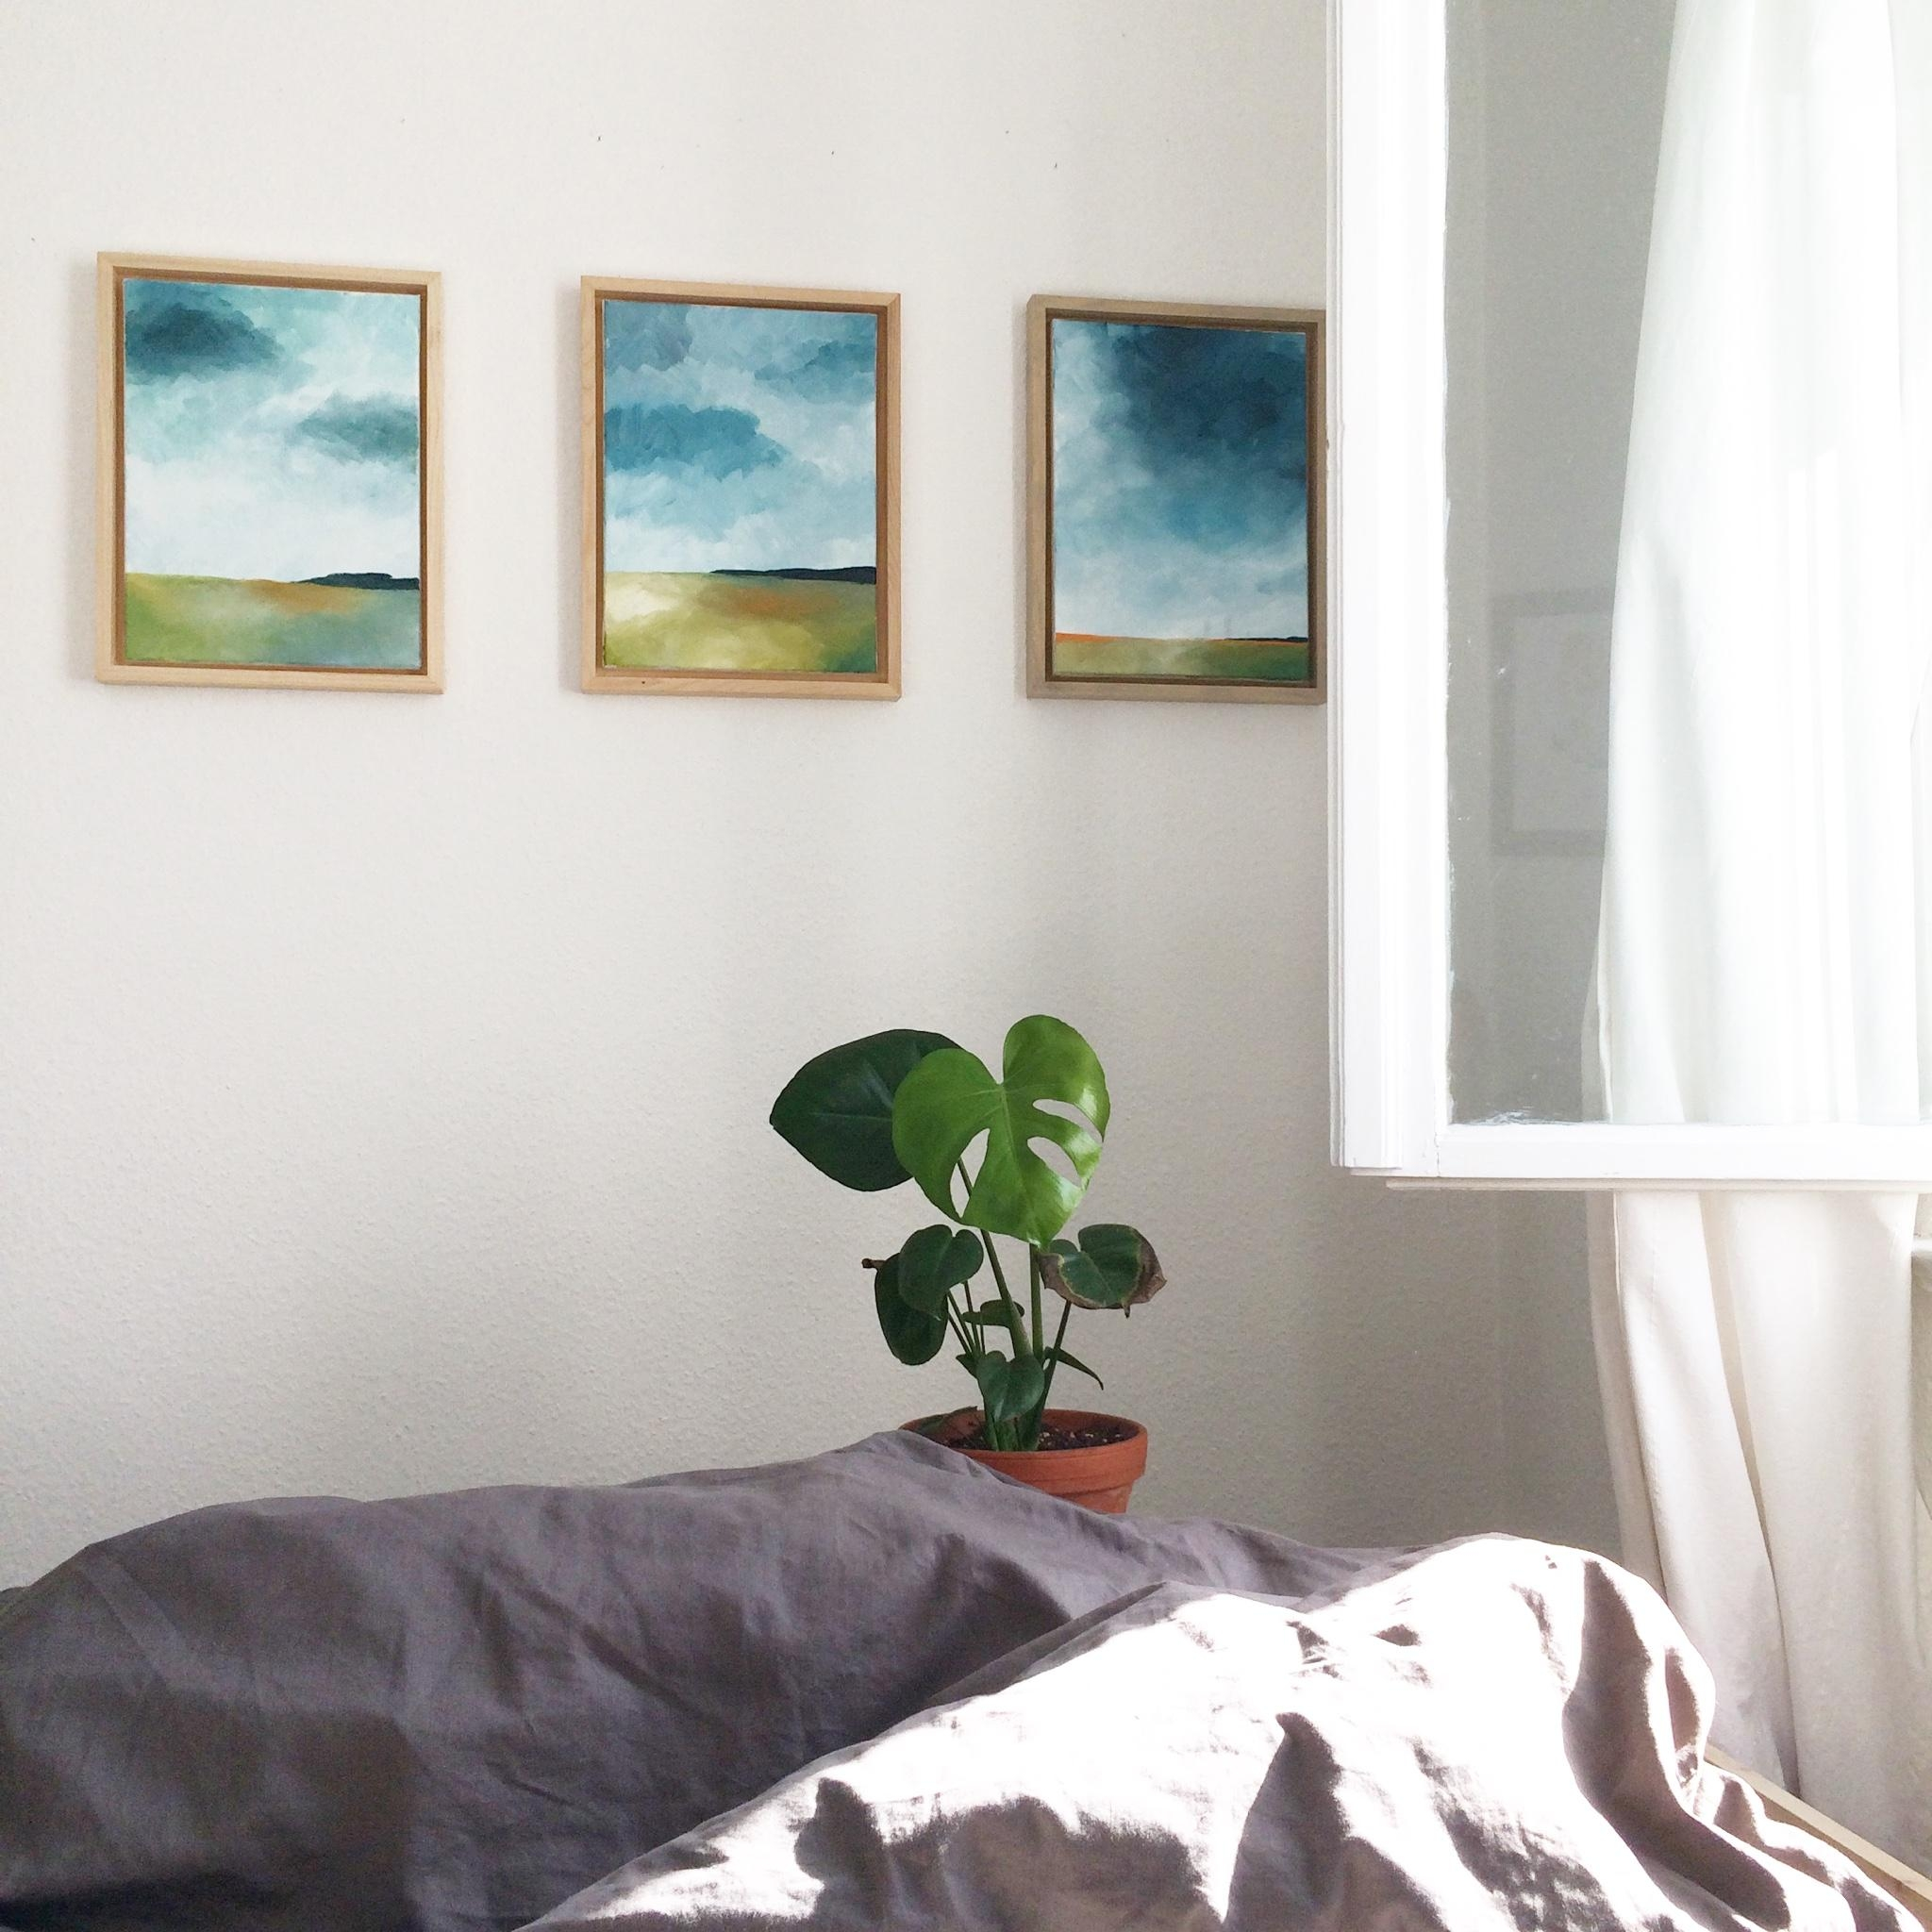 Current view + new #art #gallerywall #bilder #schlafzimmer #bett #youdesignme #kunst #bilderwand #monstera #sundaymood